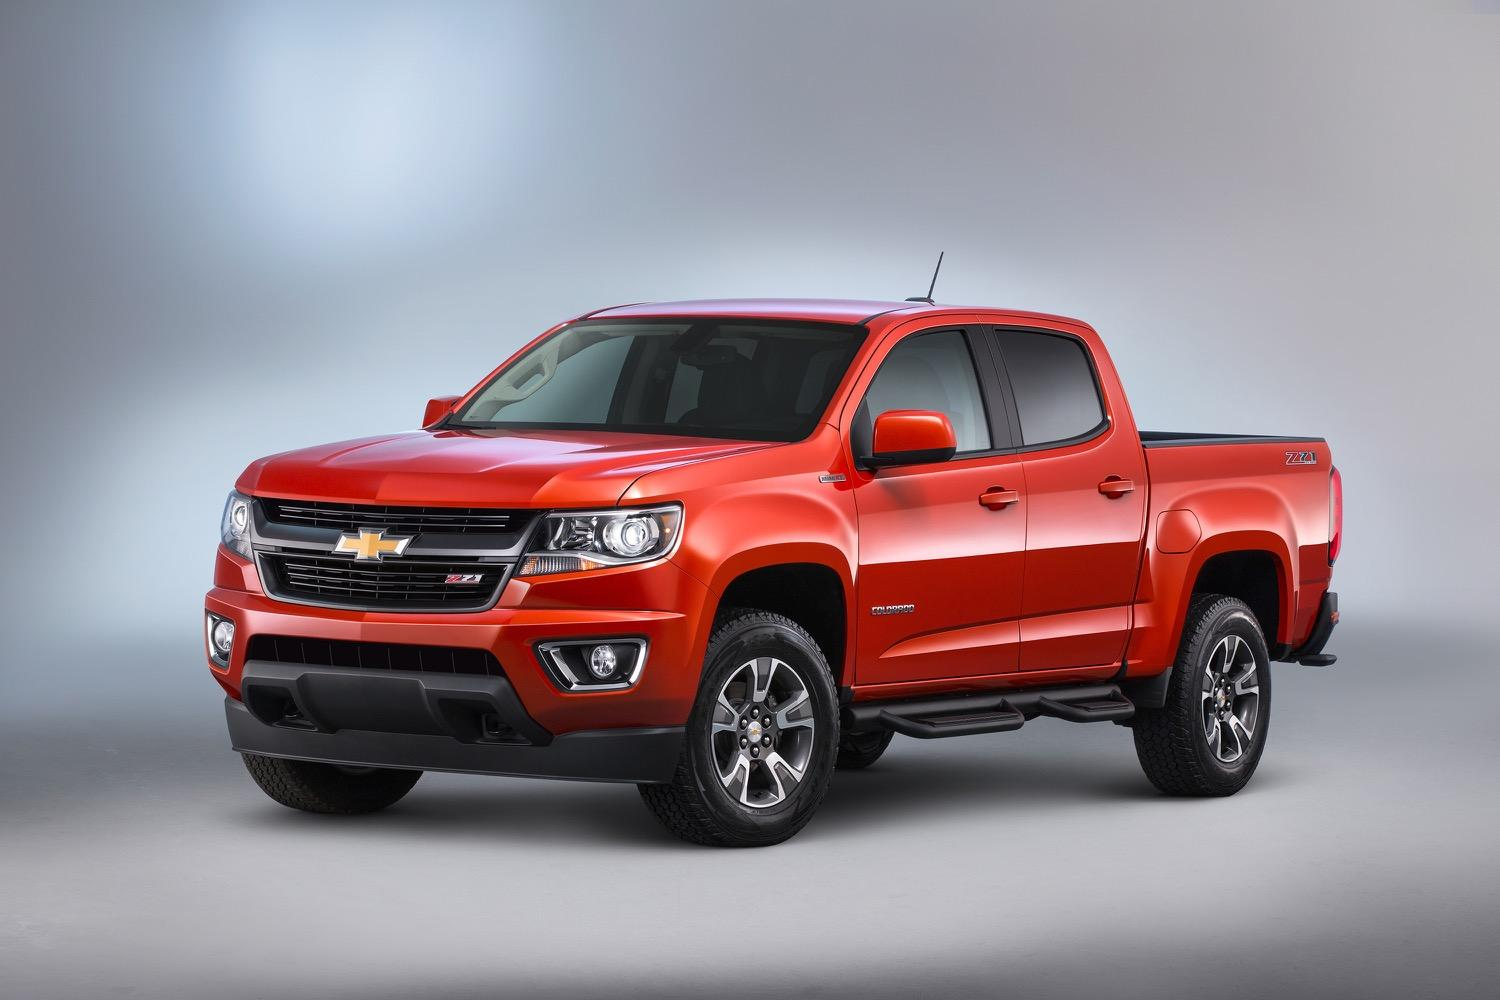 2018 Chevy Colorado Crew Cab Redesign and Changes